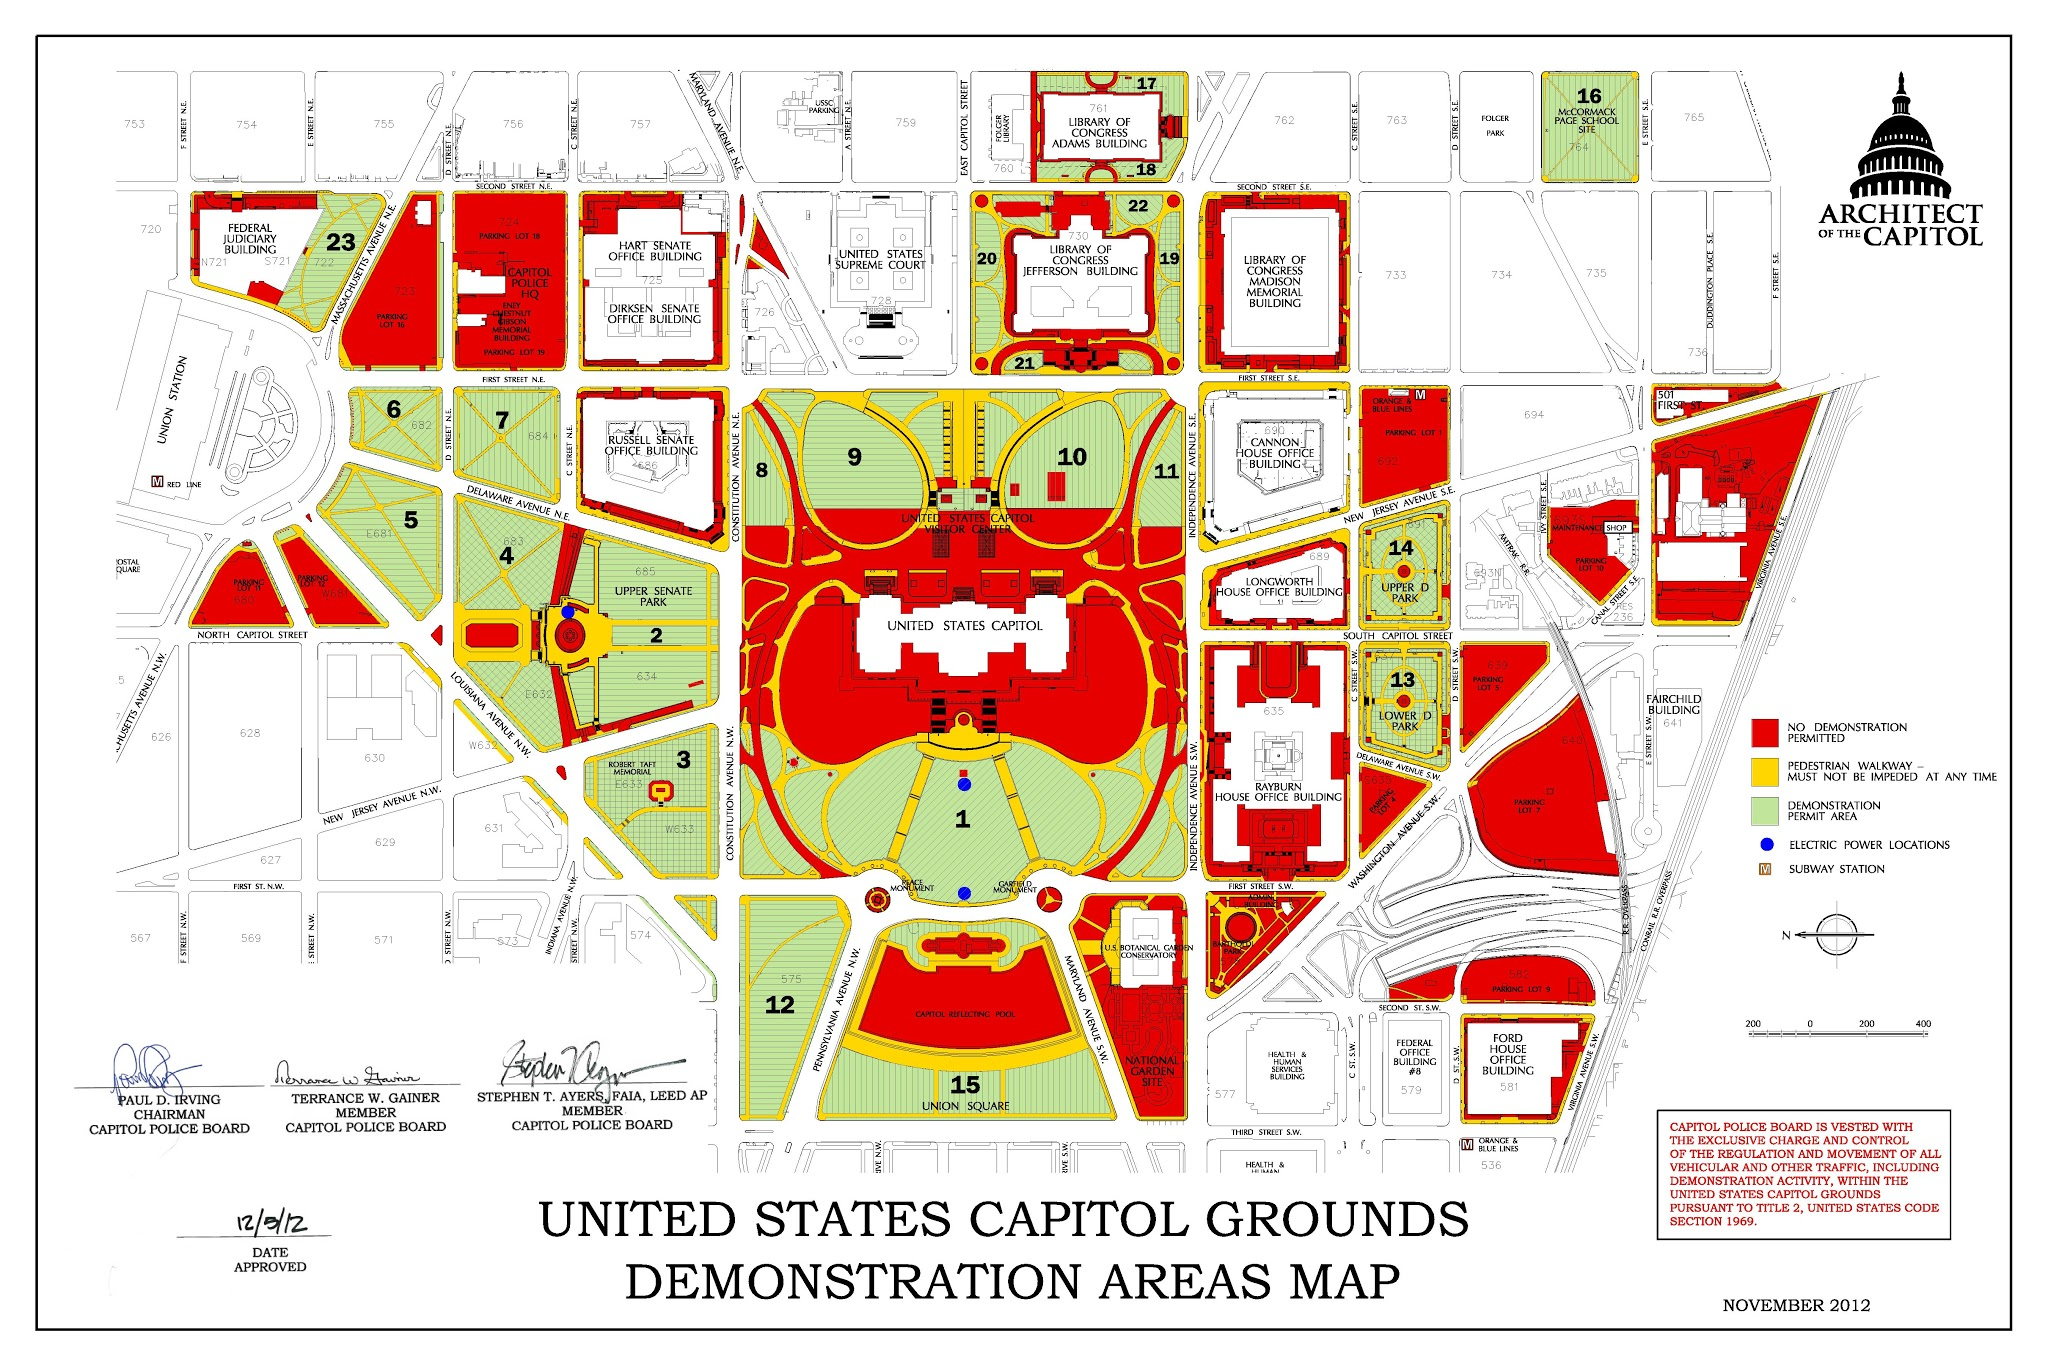 U.S._Capitol_Grounds_Demonstration_Area_Map-page-001.jpg